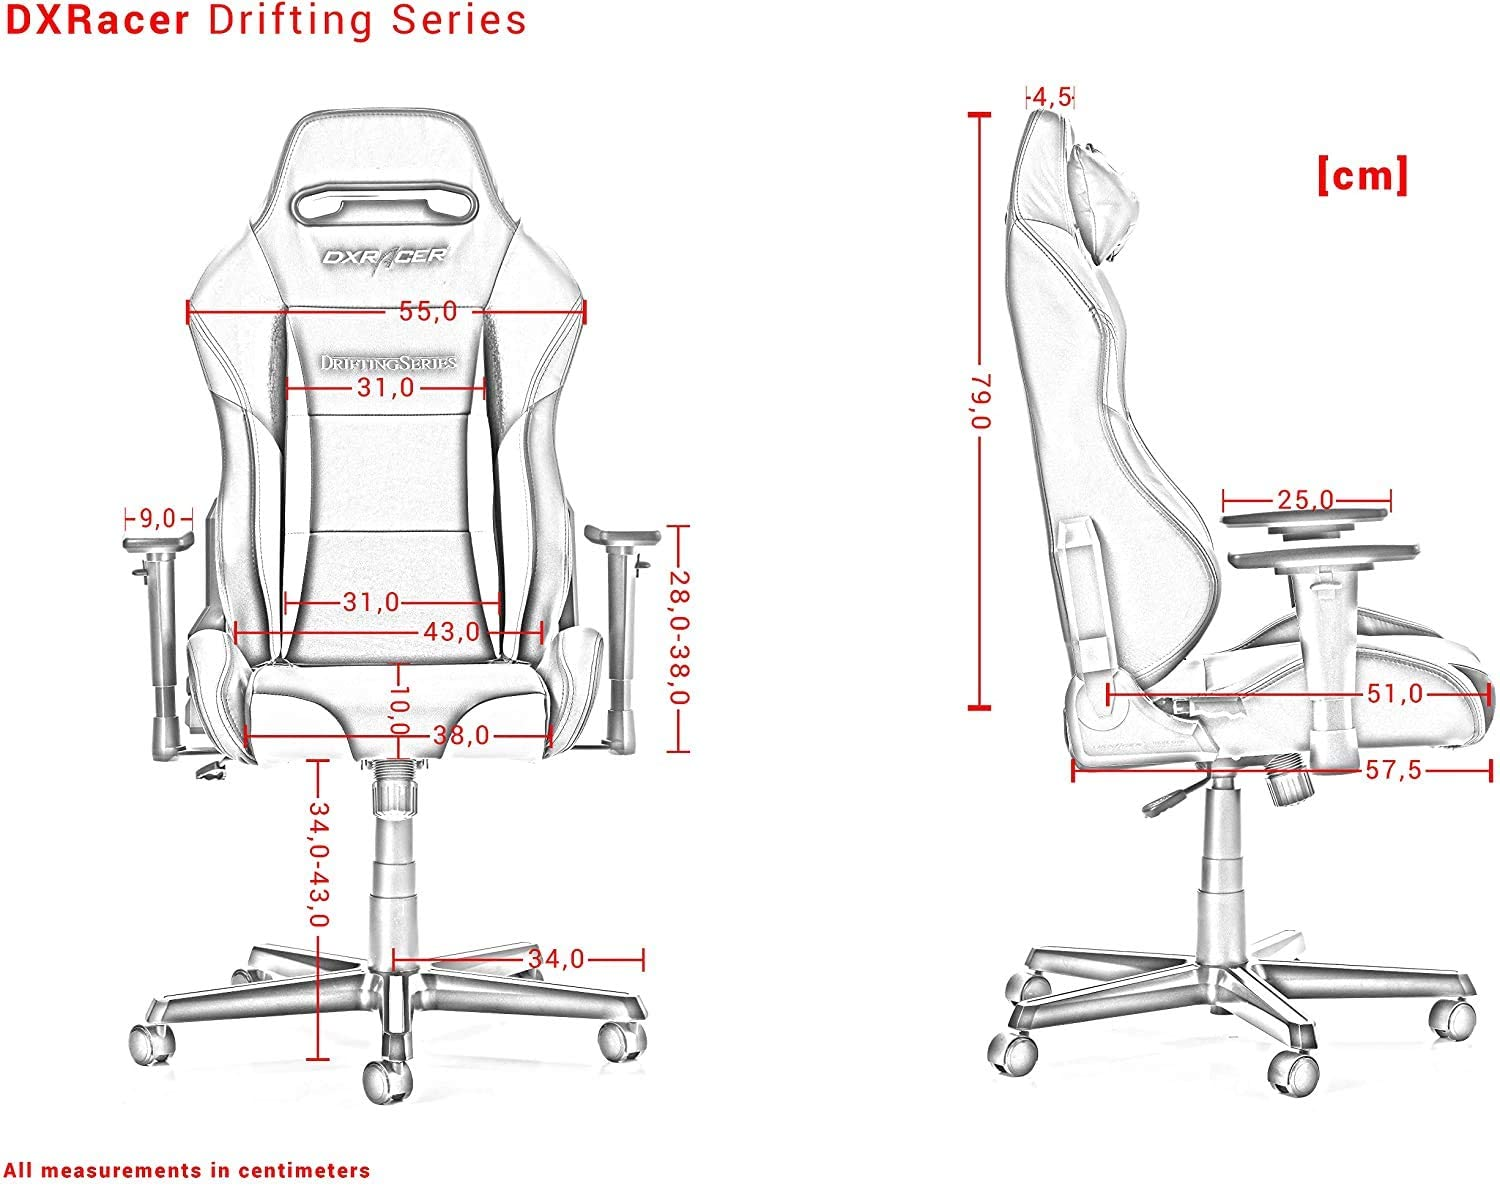 DXRacer Drifting Series OH/DM61/NWB Racing Seat Office Chair Gaming Ergonomic Adjustable Computer Chair with - Included Head and Lumbar Support Pillows (Black, White, Blue)